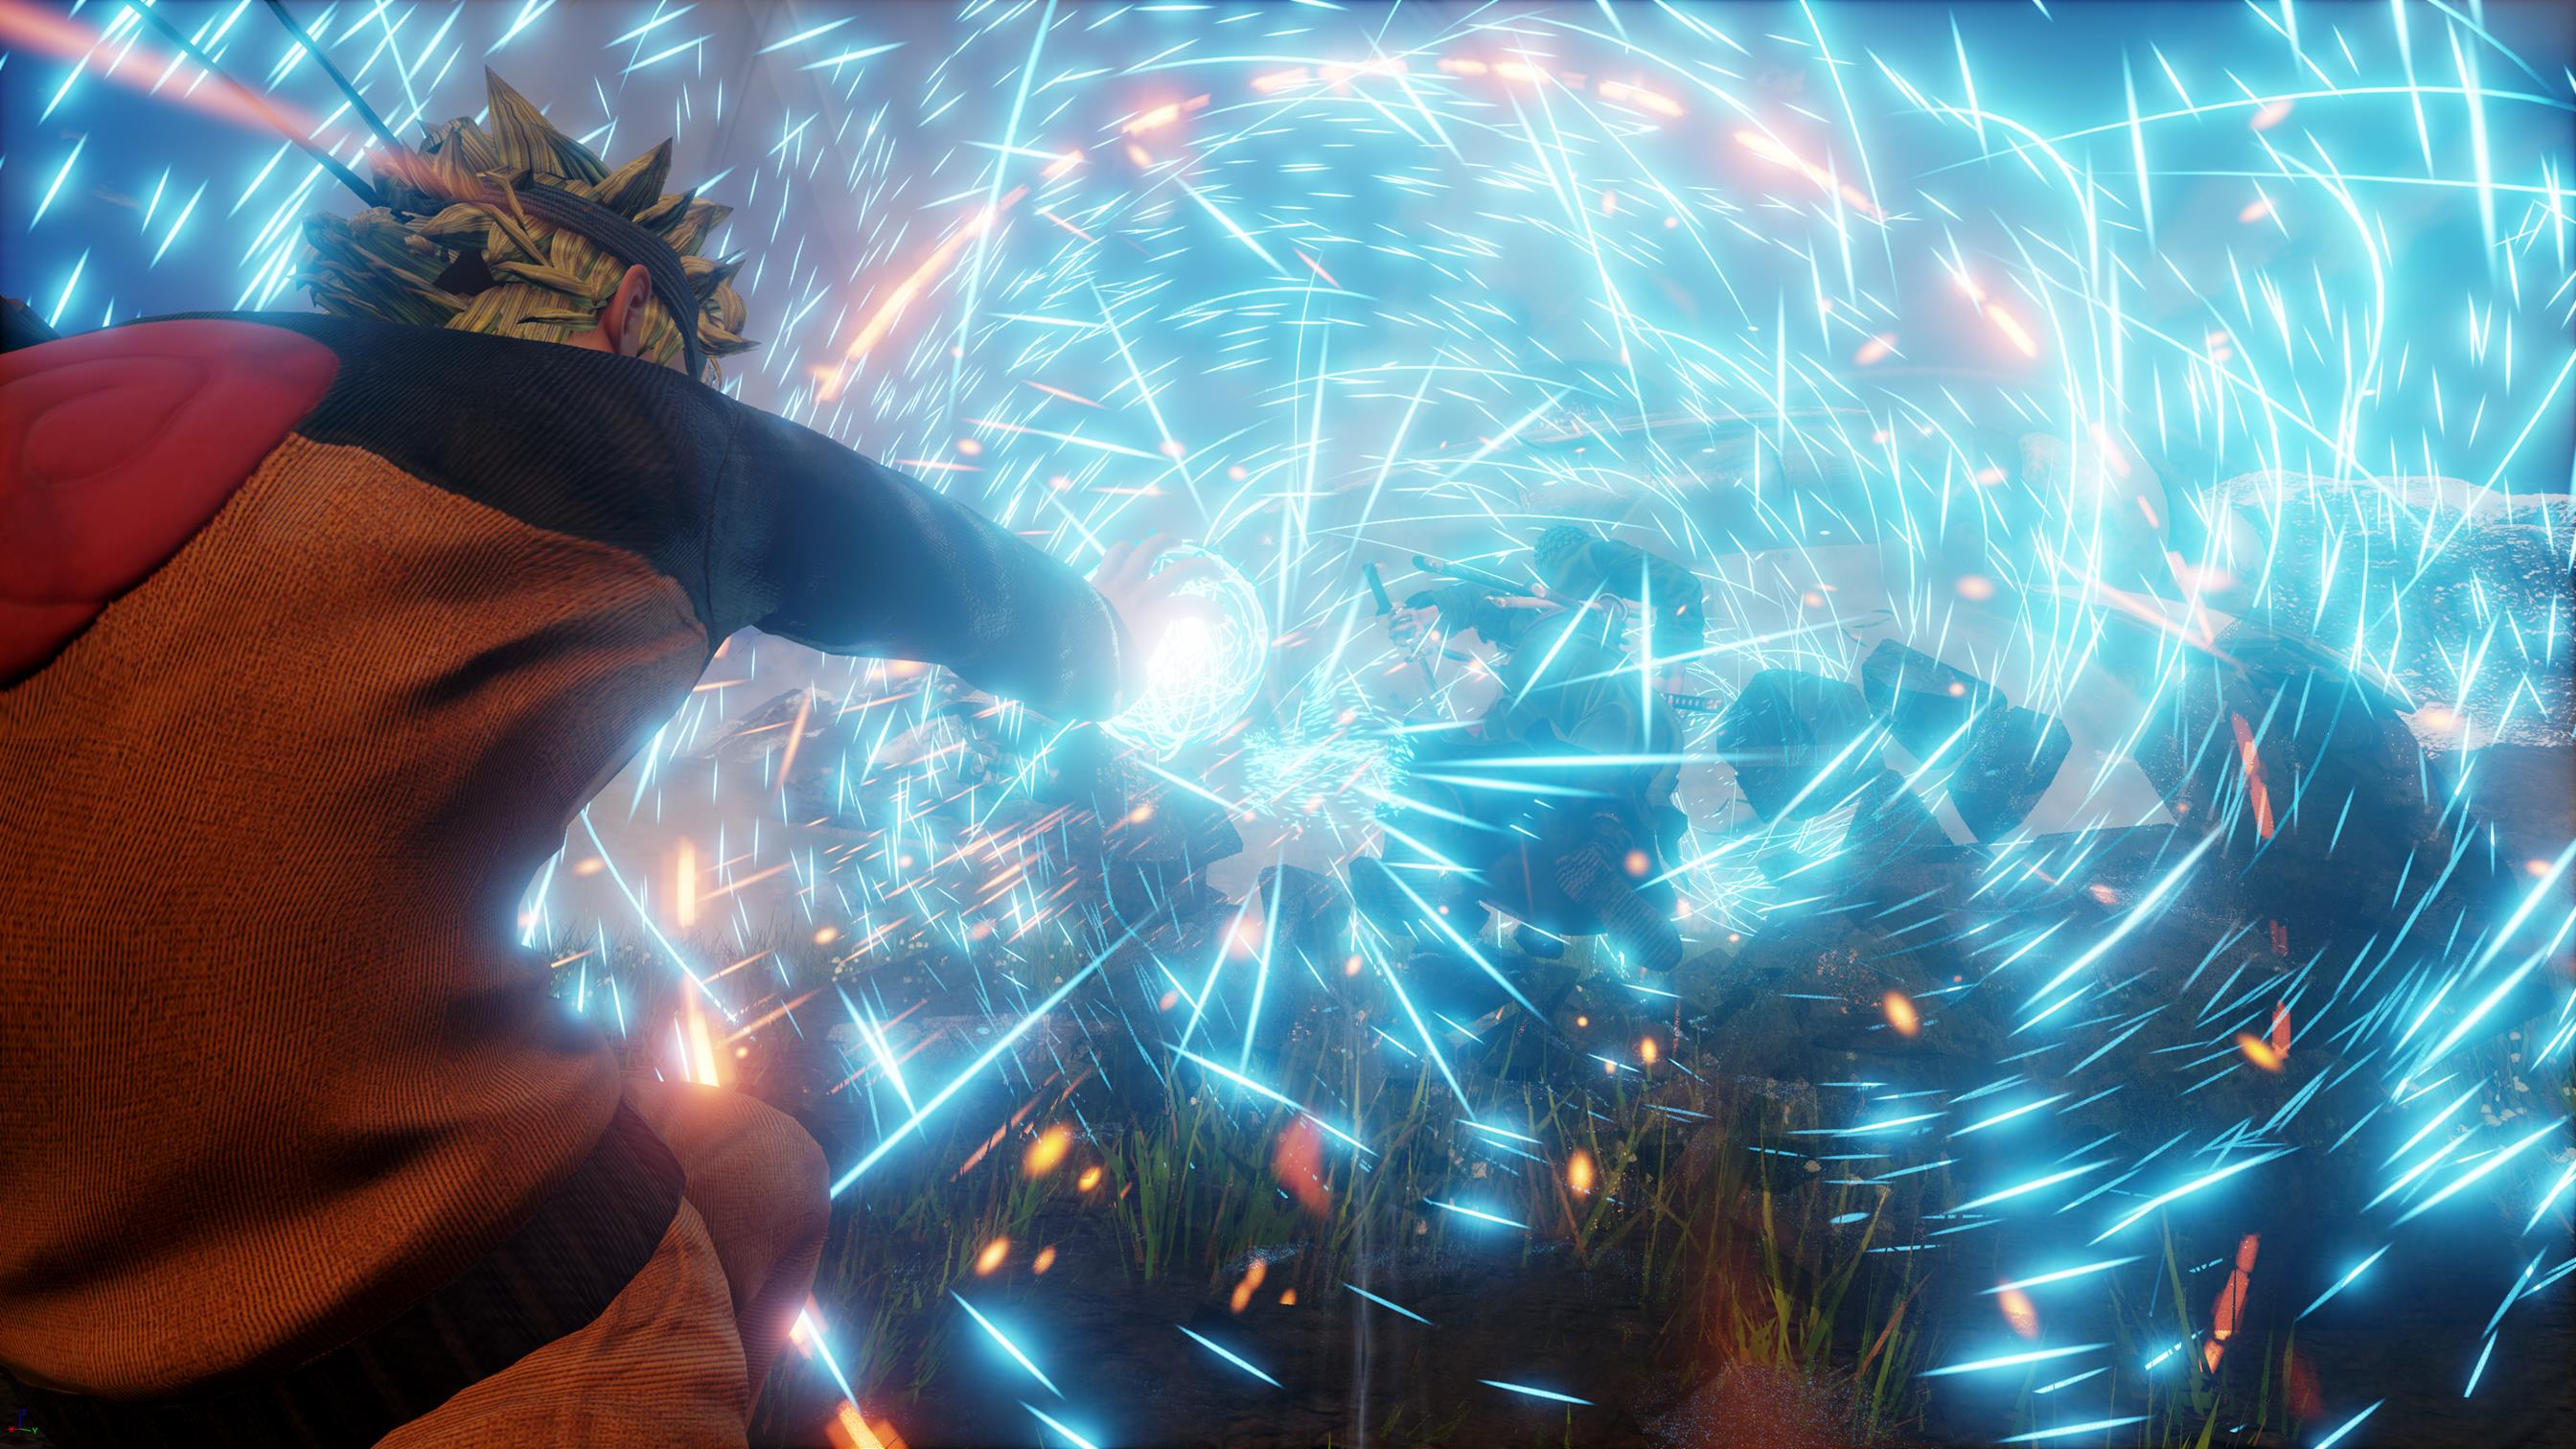 Dragon Ball, Naruto, and One Piece team up for Bandai Namco's Jump Force